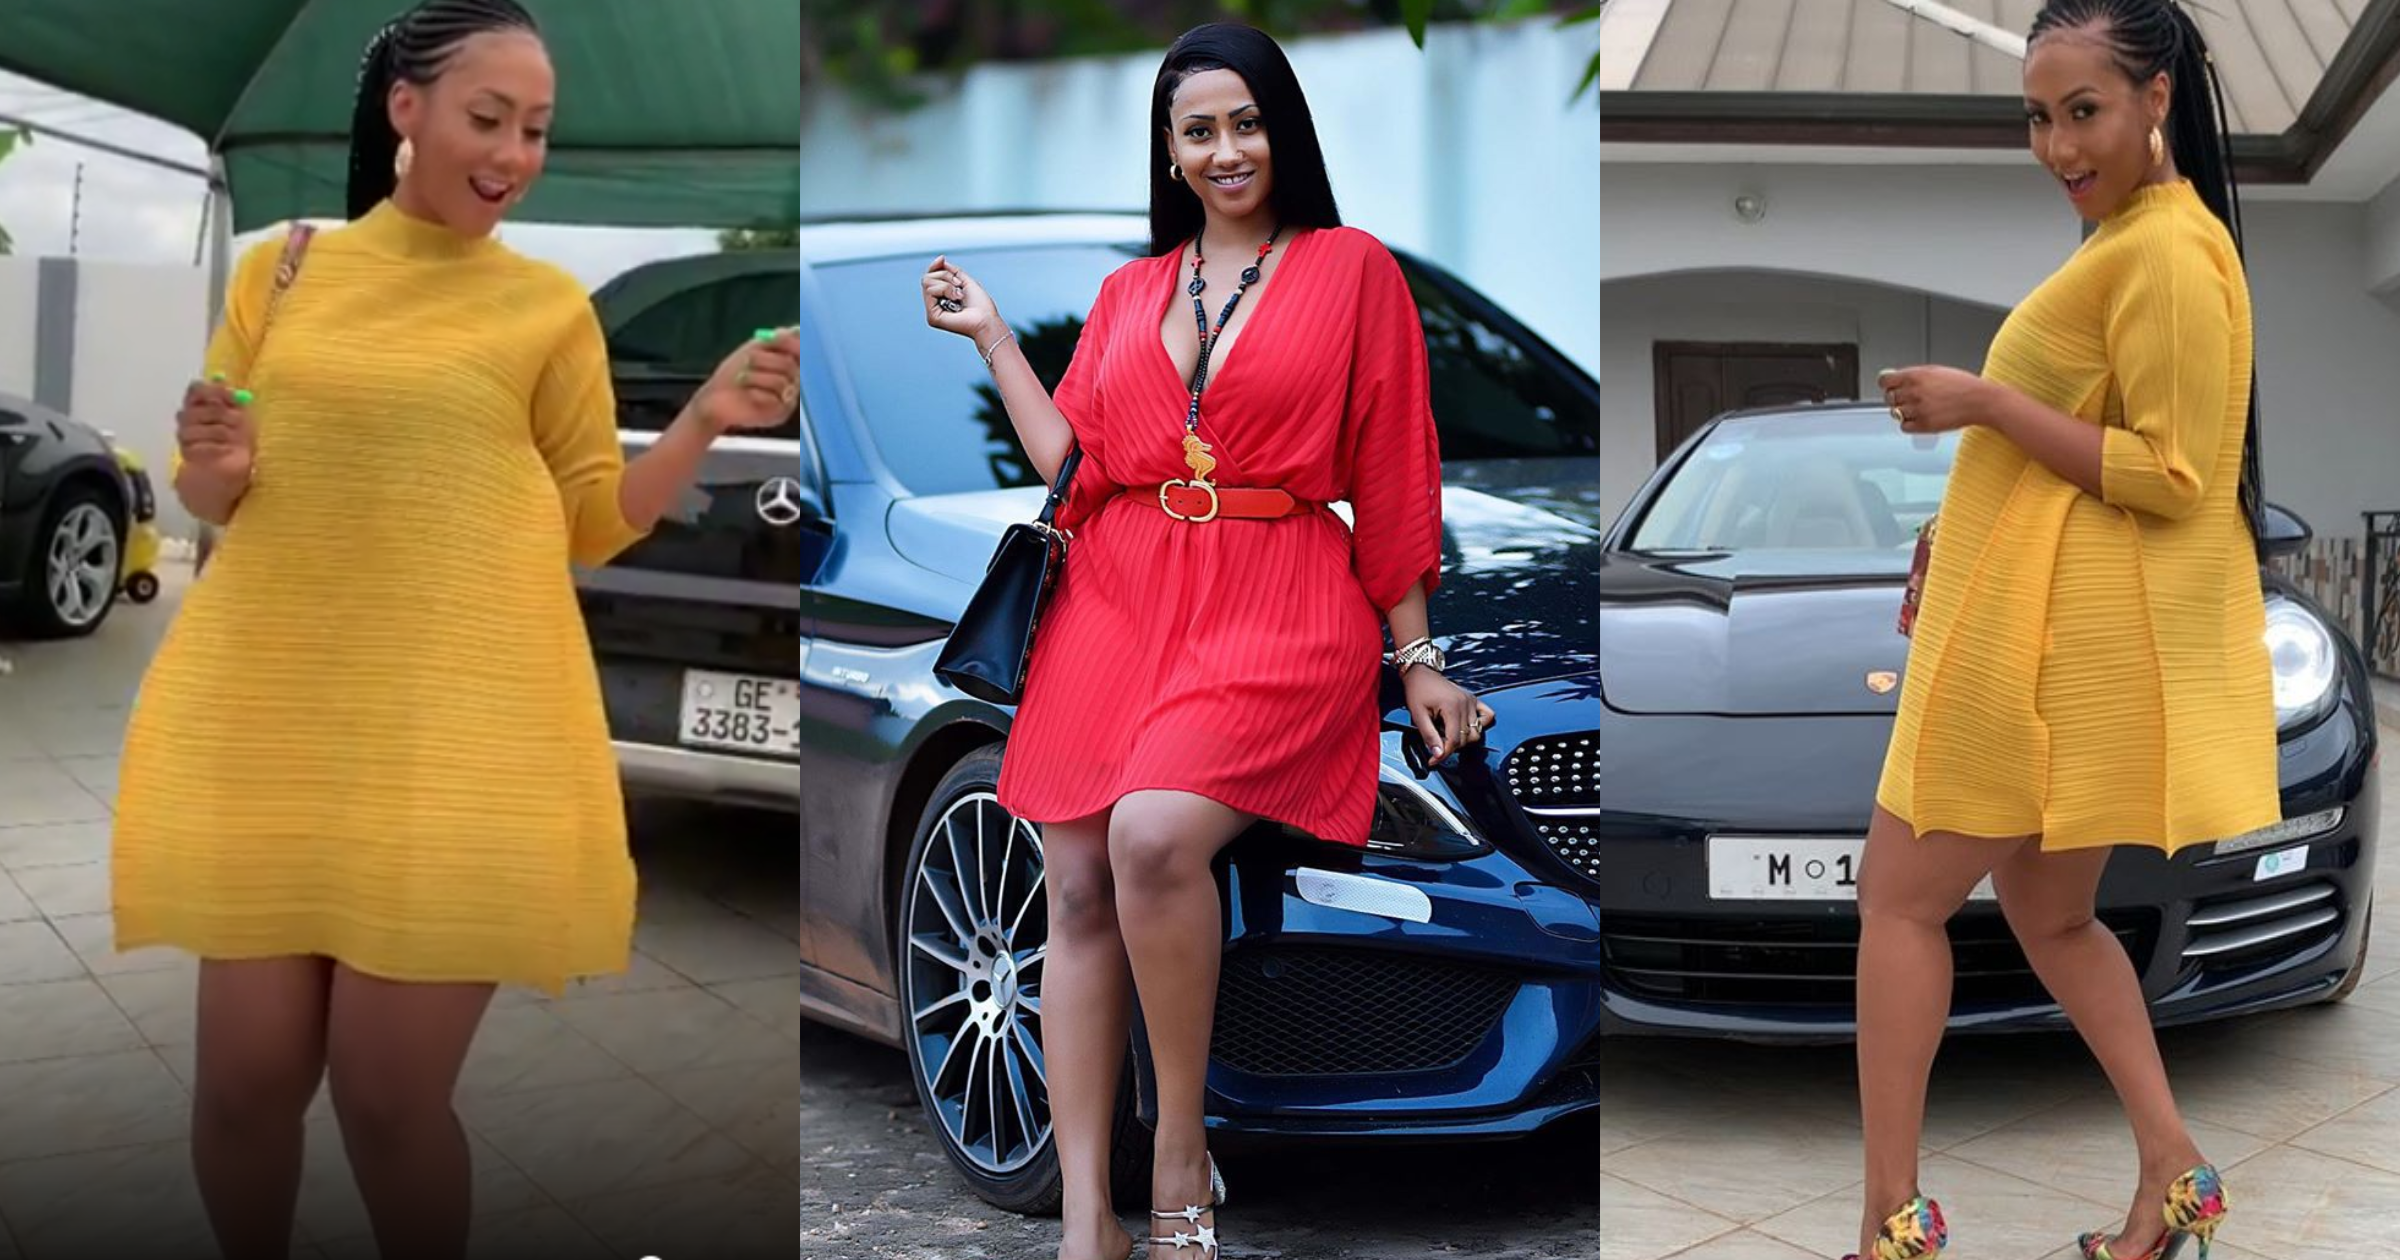 Latest video from Hajia4Real's beautiful mansion full of expensive cars shows she is a rich girl